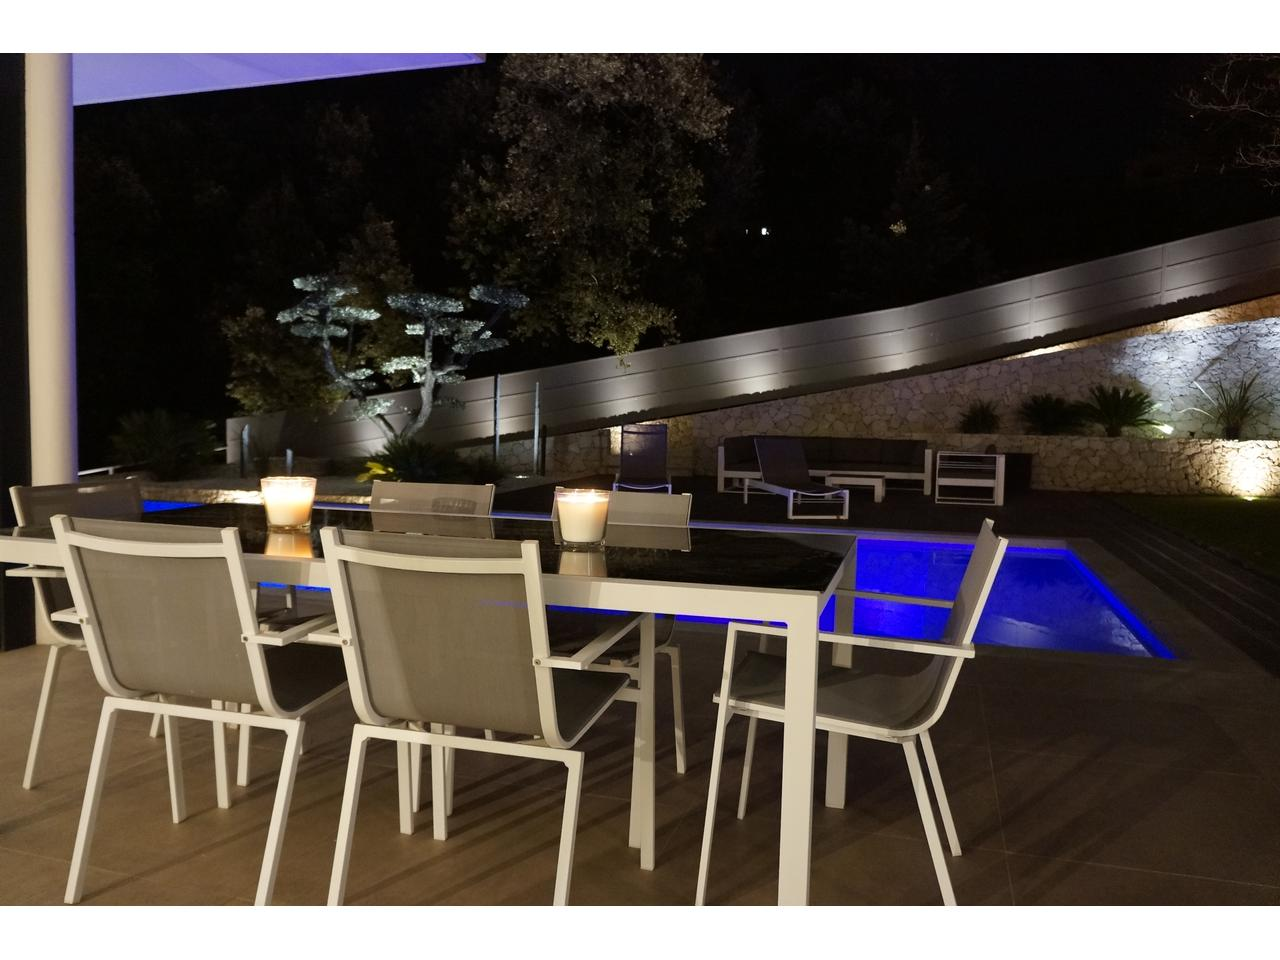 Outdoor dining at night